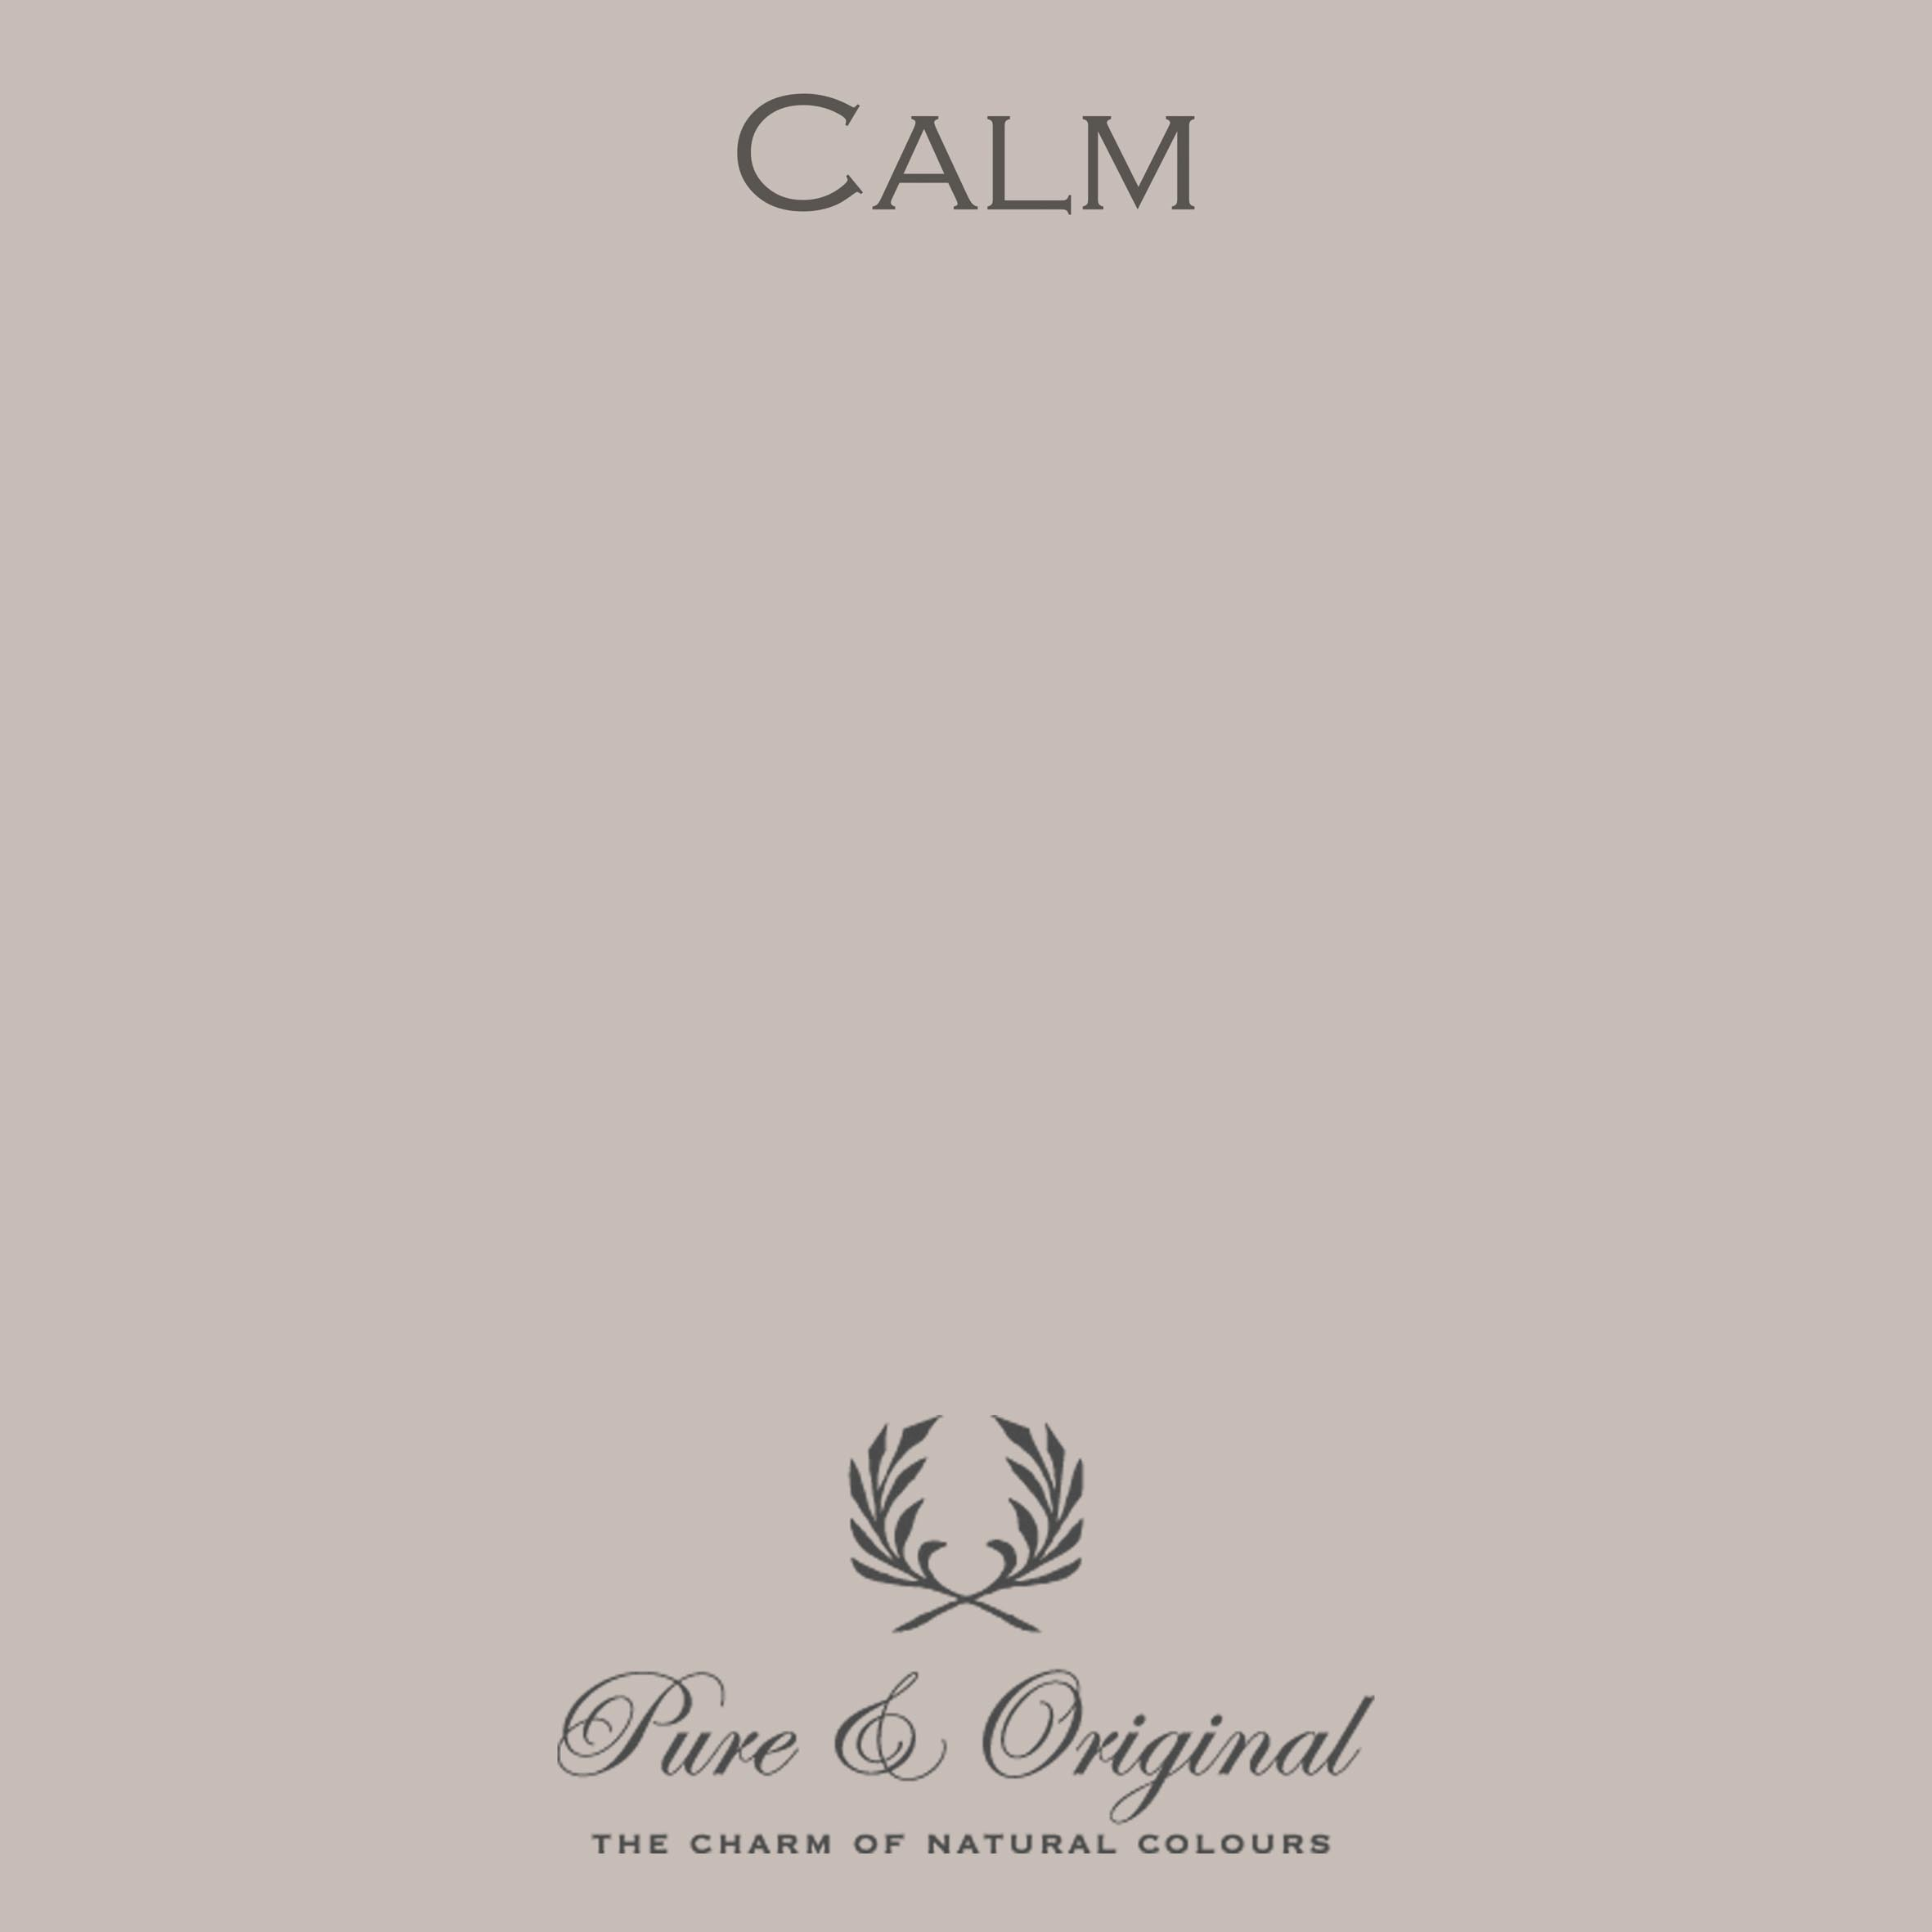 Pure & Original colour Calm